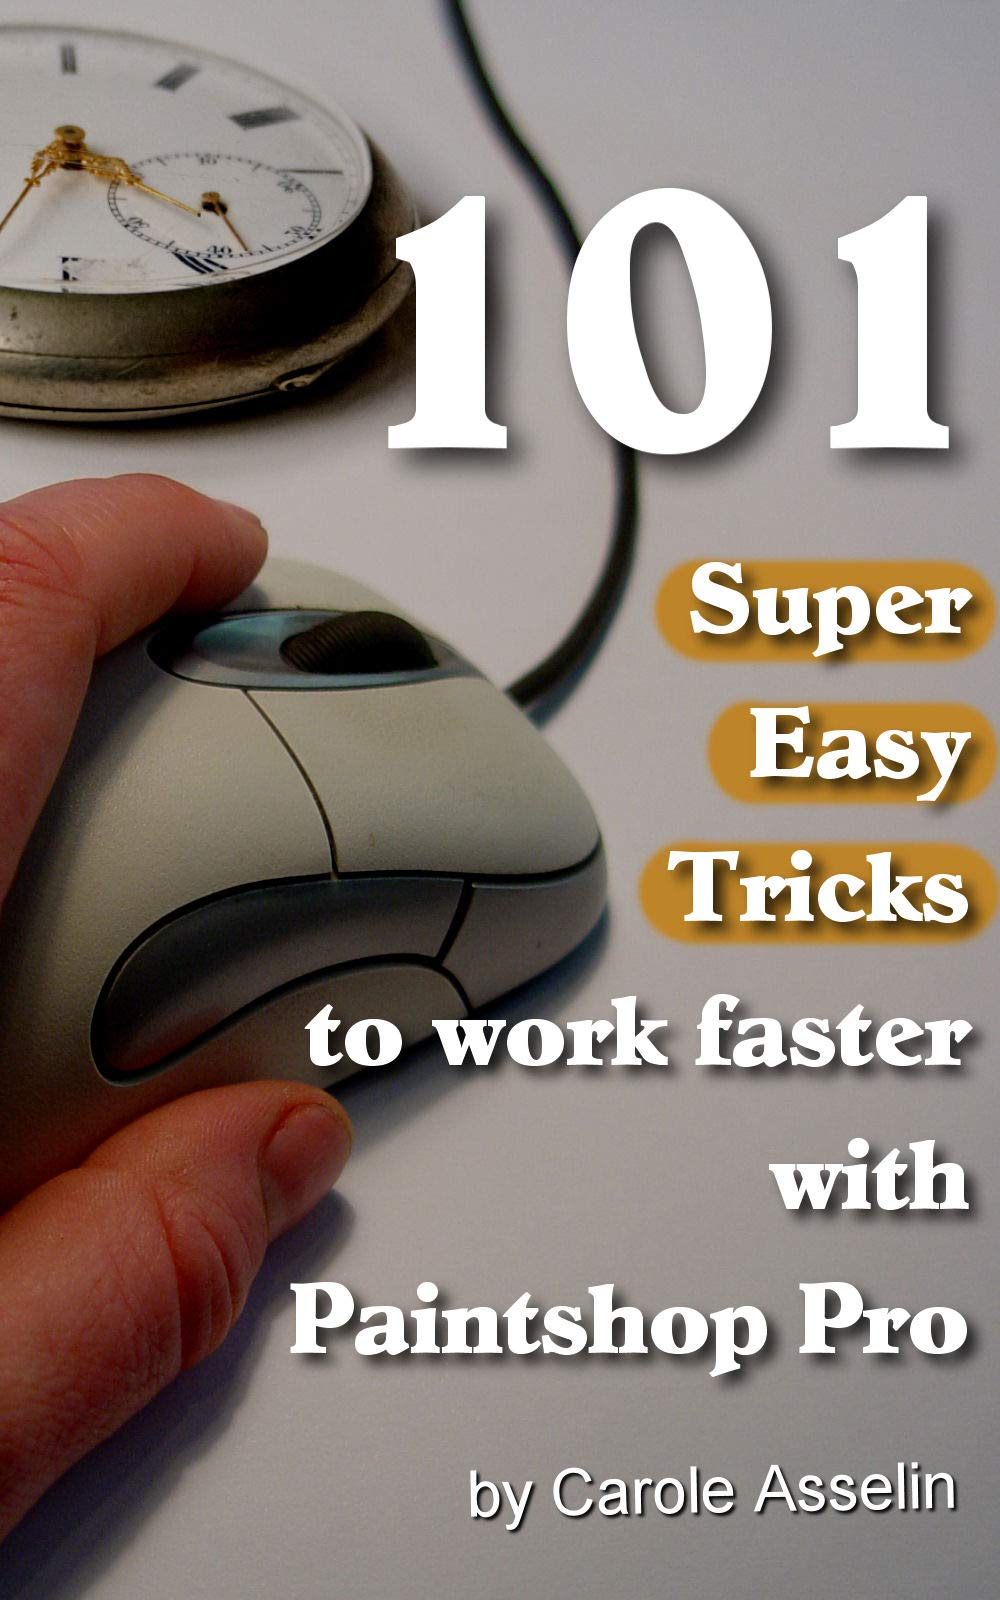 101 Super Easy Tricks To Work Faster With Paintshop Pro  Tips And Tricks To Work Faster With Paintshop Pro Book 1   English Edition